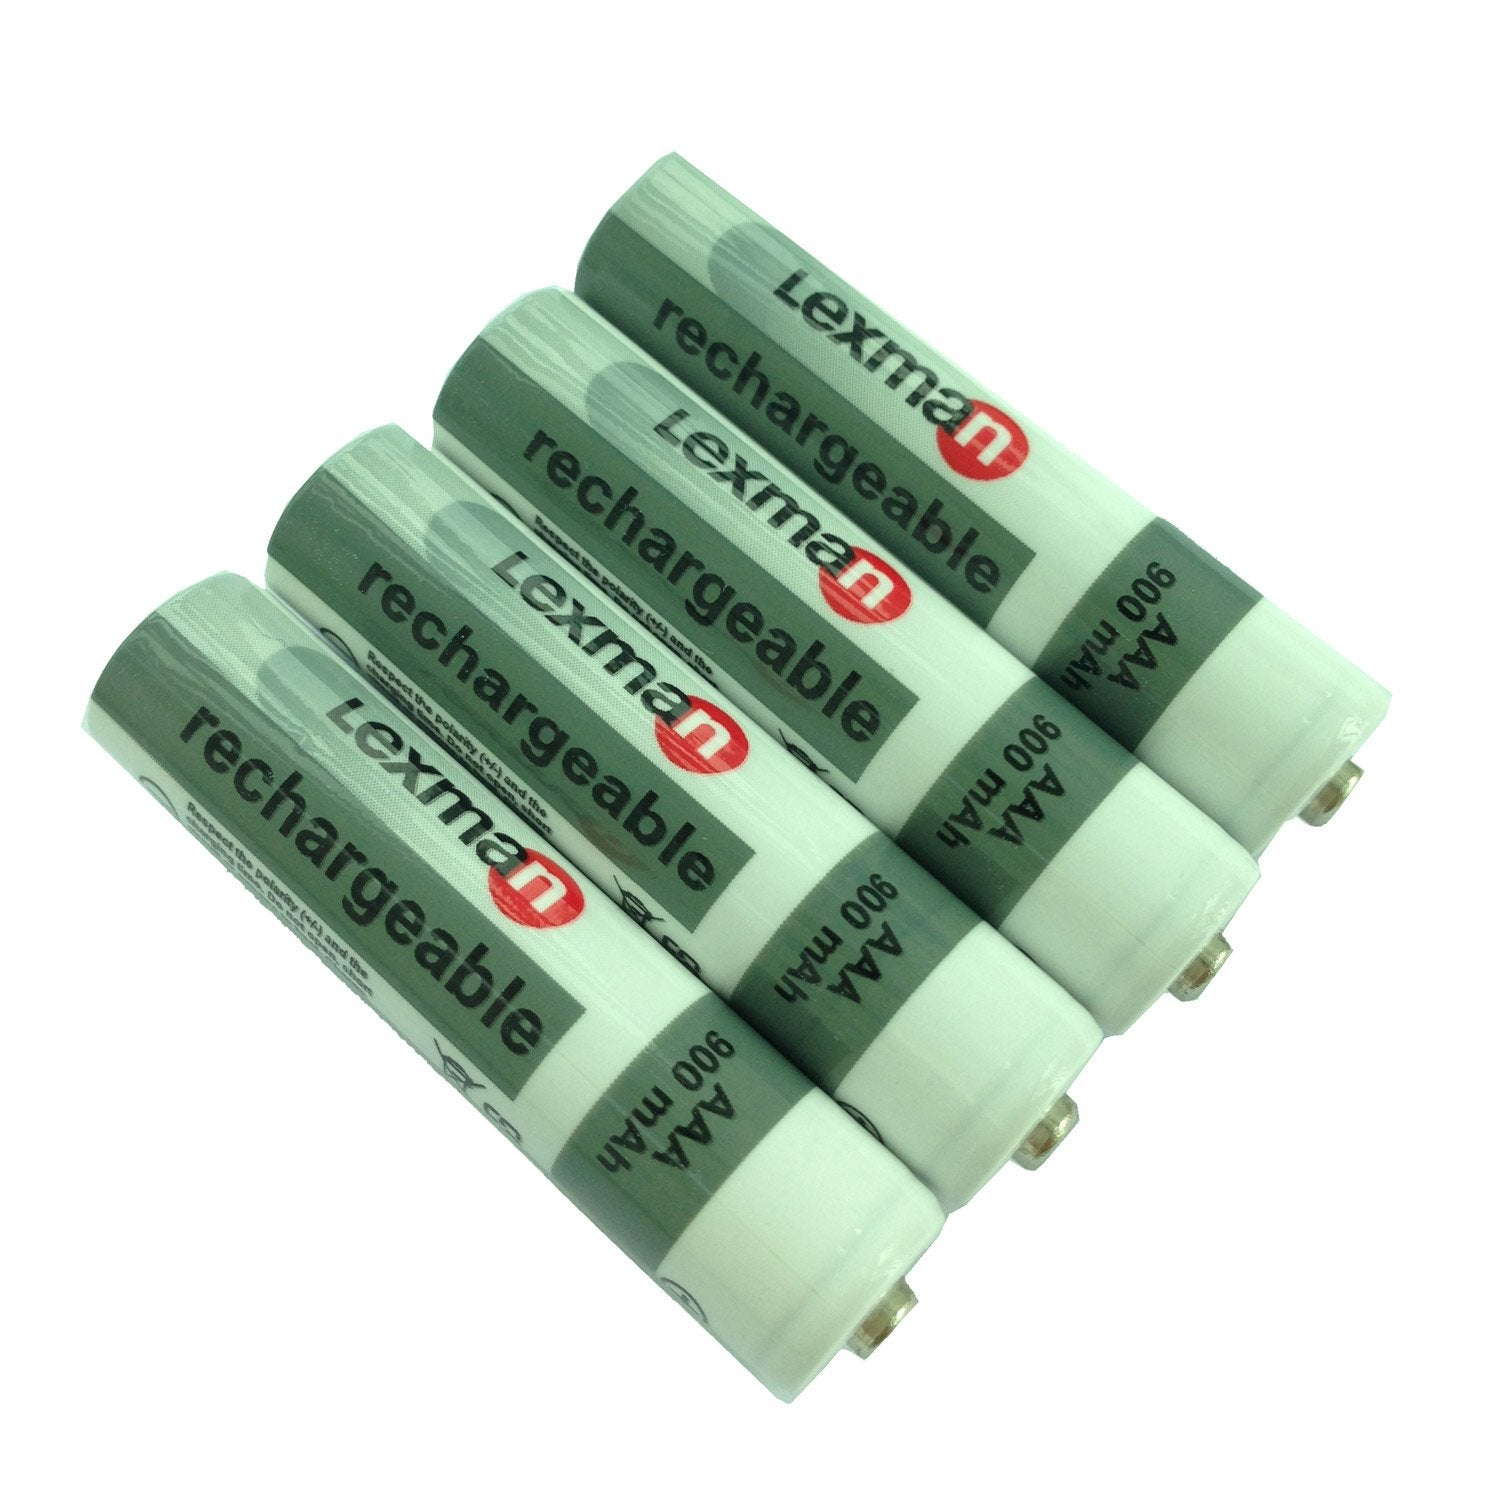 lot de 4 piles rechargeable lr03 aaa 1 5 v 900 mah lexman leroy merlin. Black Bedroom Furniture Sets. Home Design Ideas